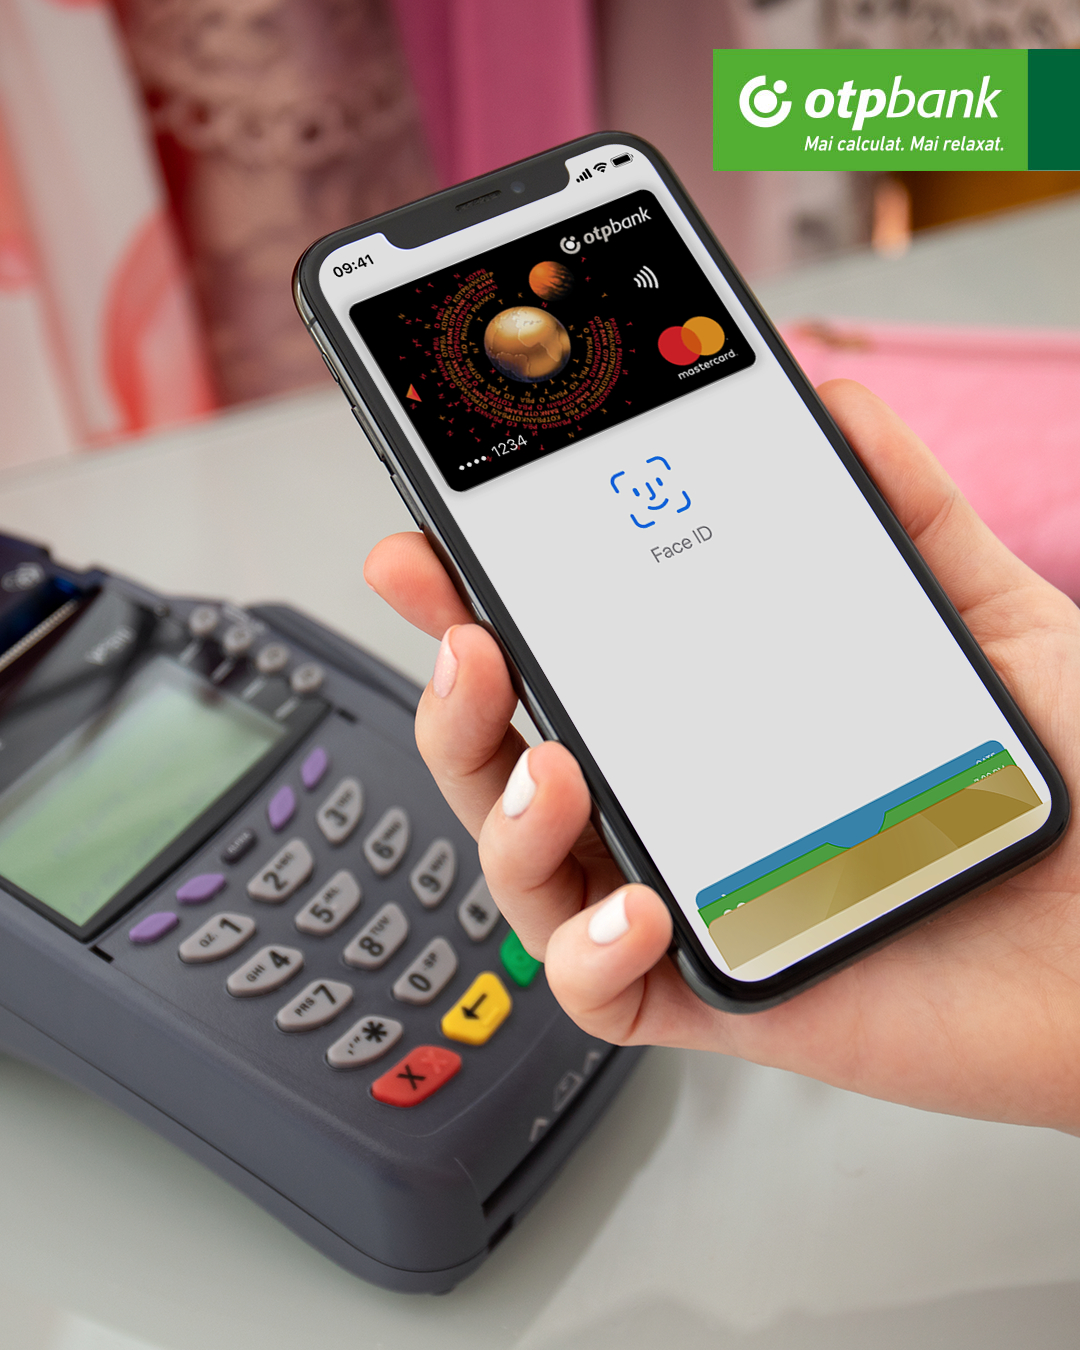 Apple Pay se extinde. Disponibil la OTP Bank pentru carduri Mastercard